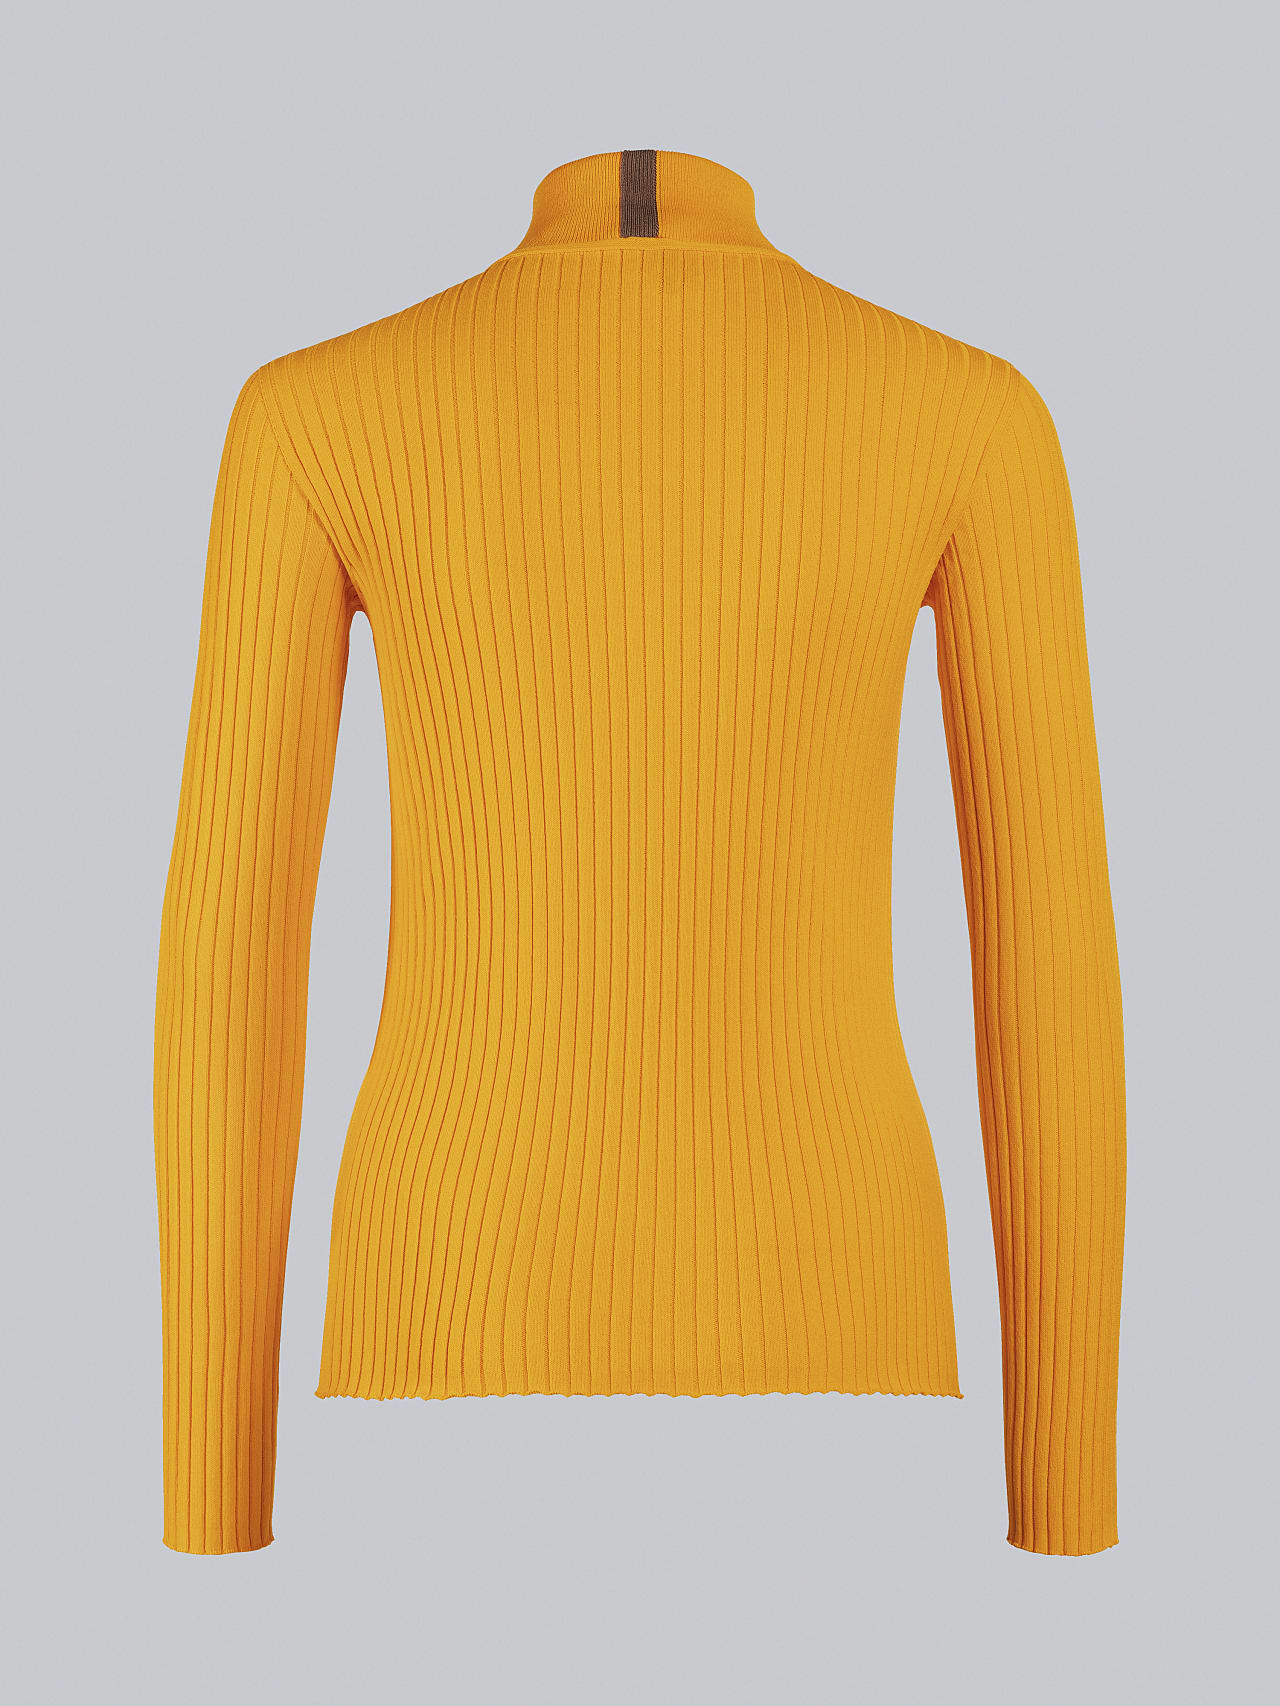 FAXEE V1.Y5.02 Seamless 3D Knit Mock-Neck Jumper yellow Left Alpha Tauri